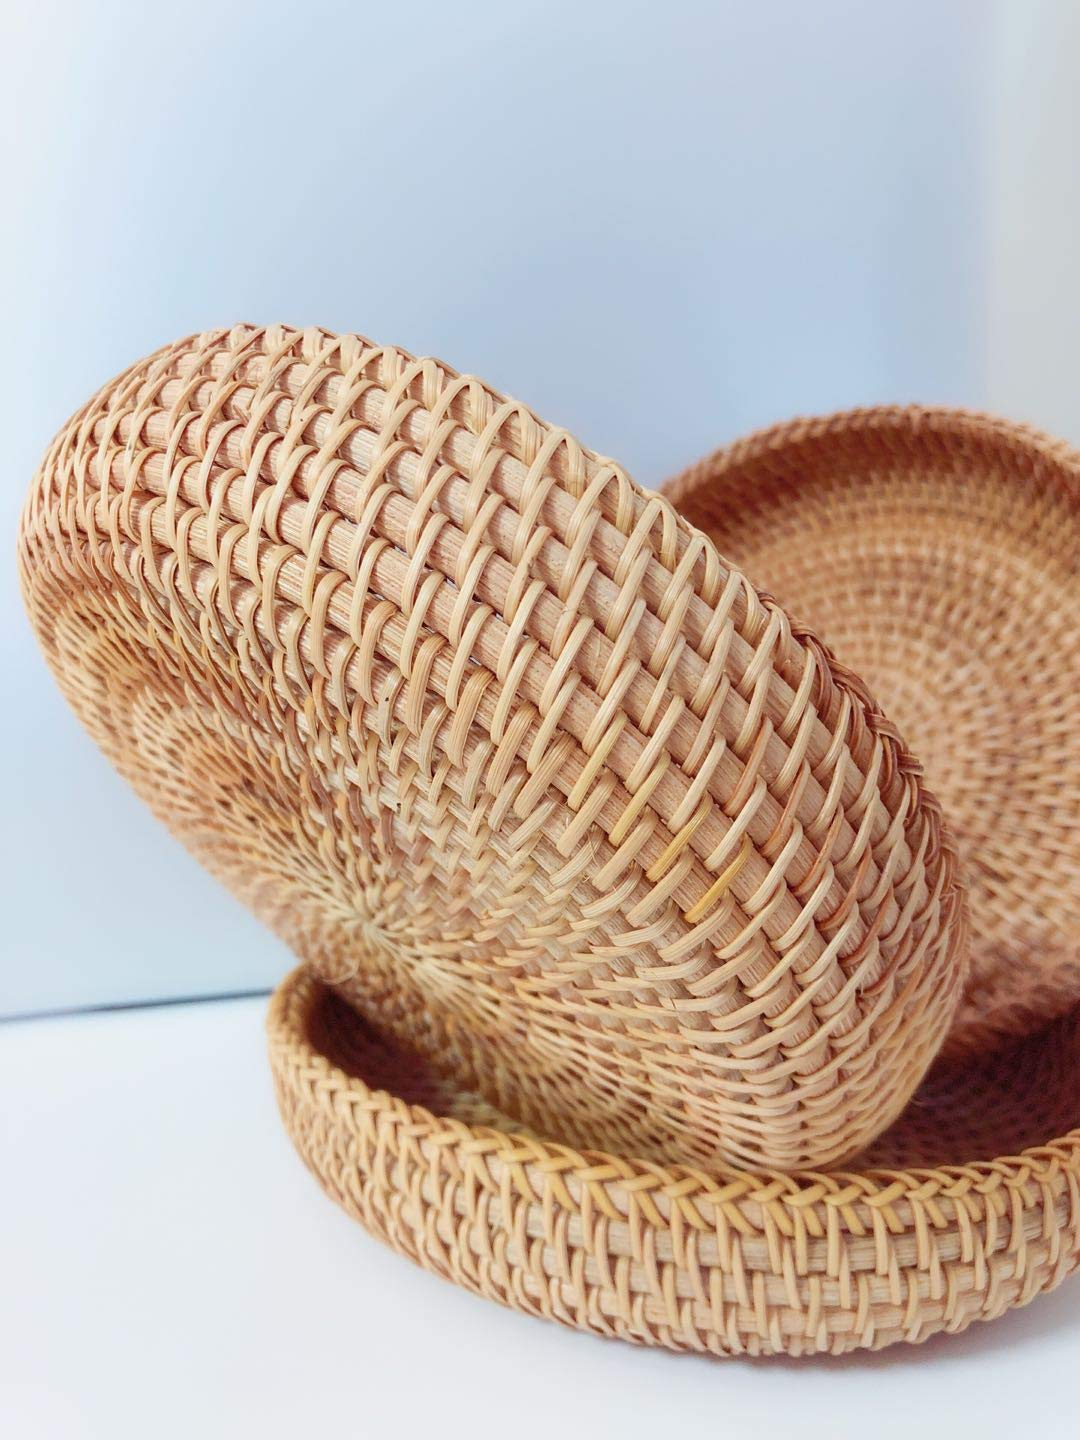 Rattan Basket Dried Fruit Basket Woven Basket Basket For Gifts Fruit Baskets Wicker Picnic Basket Wicker Basket Candy Basket 2019 Organizer Shallow Basket Gift Baskets For Women (2PCs wicker basekt) by TIMESFRIEND (Image #4)